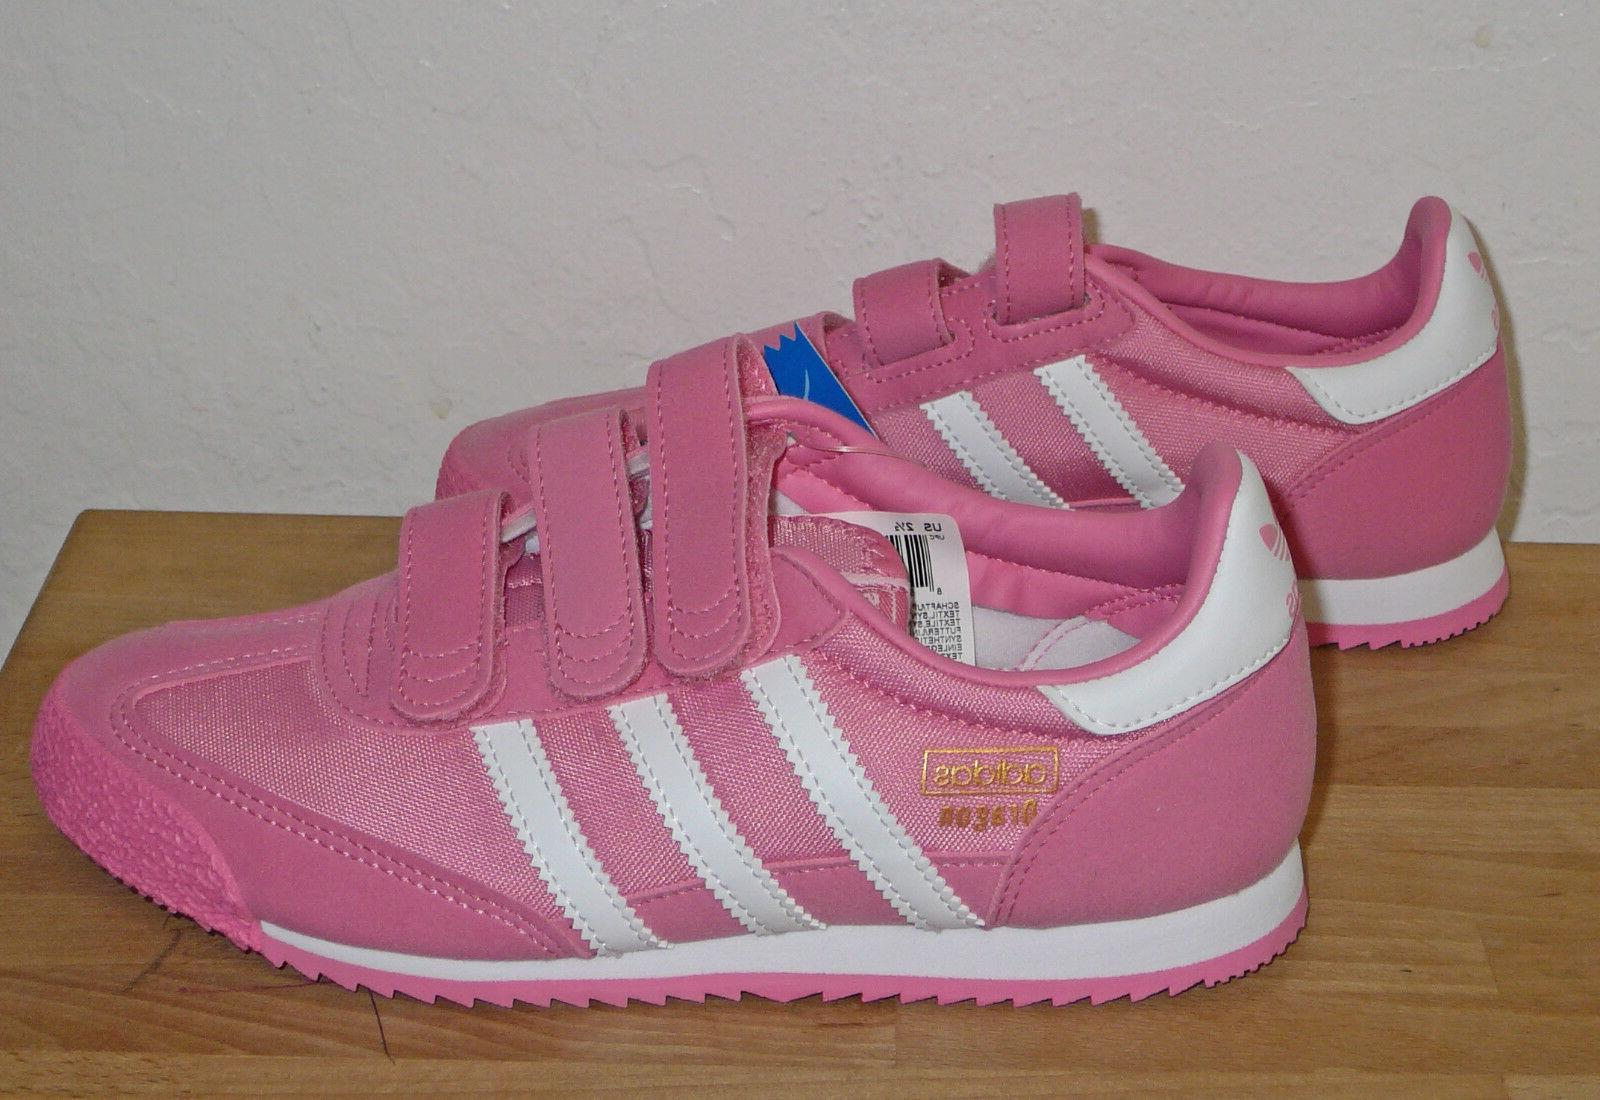 NEW Adidas Dragon OG Girls Pink Shoes Sneakers Childrens Kid